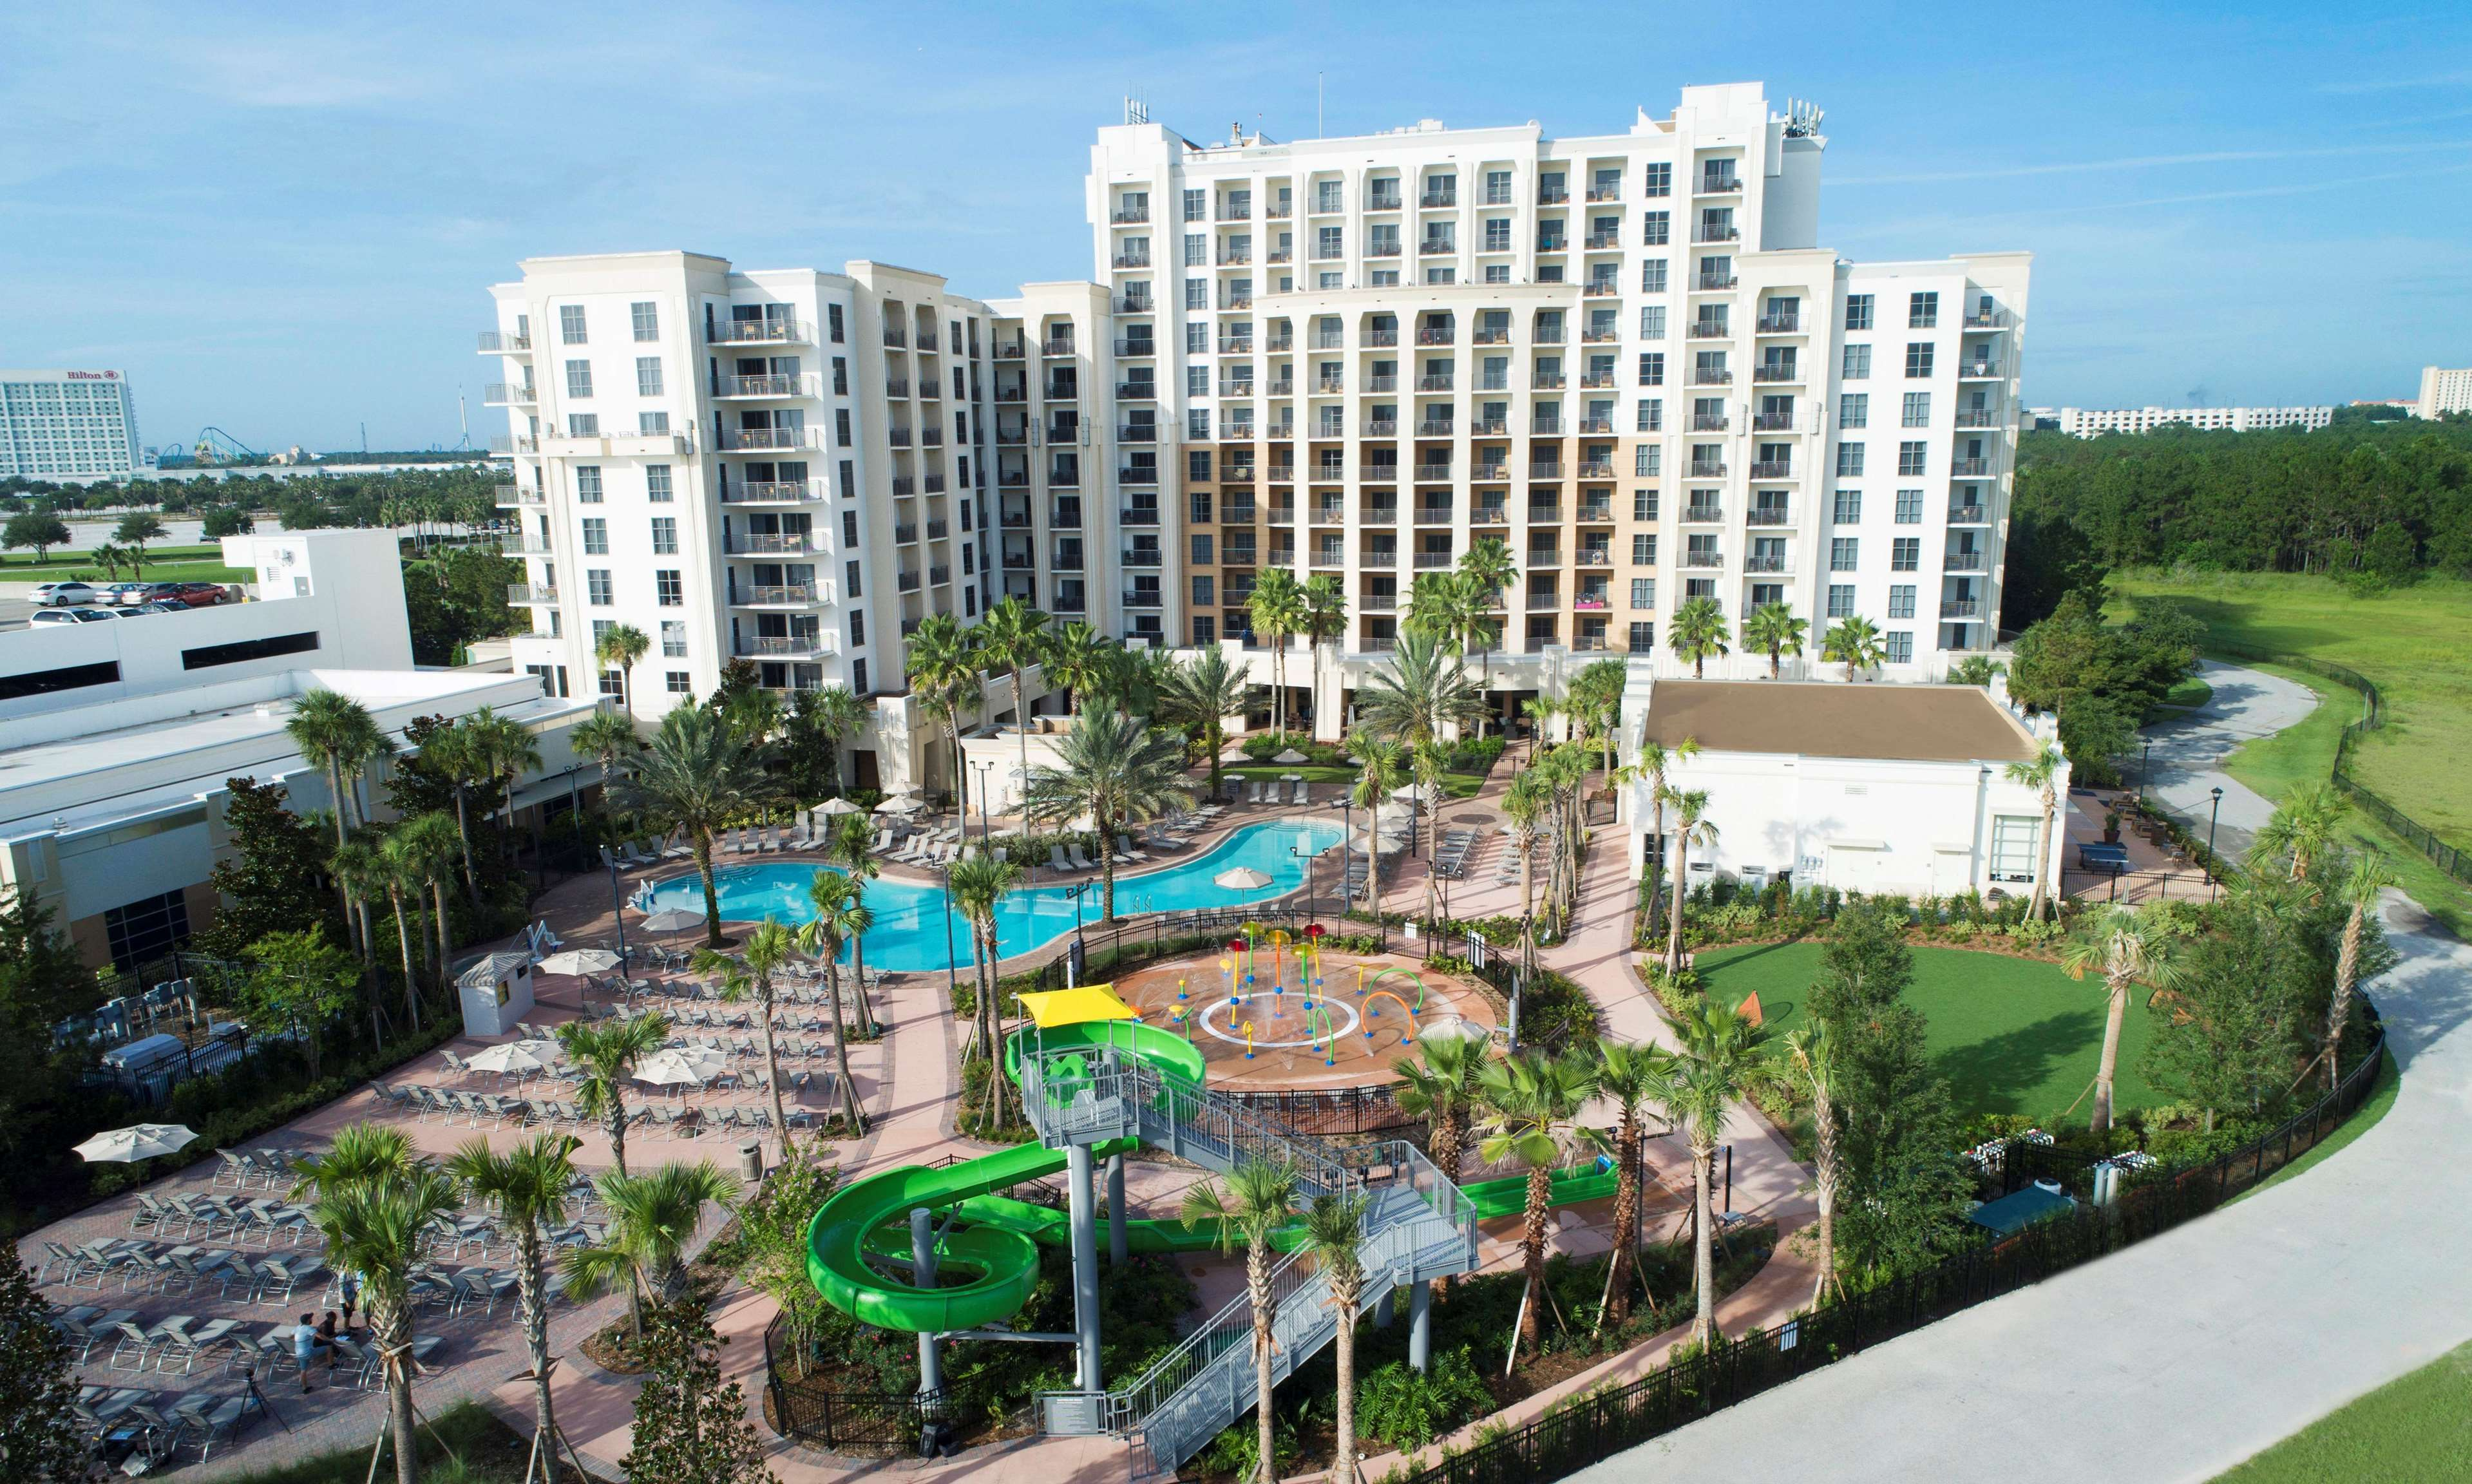 Las Palmeras by Hilton Grand Vacations Orlando Florida